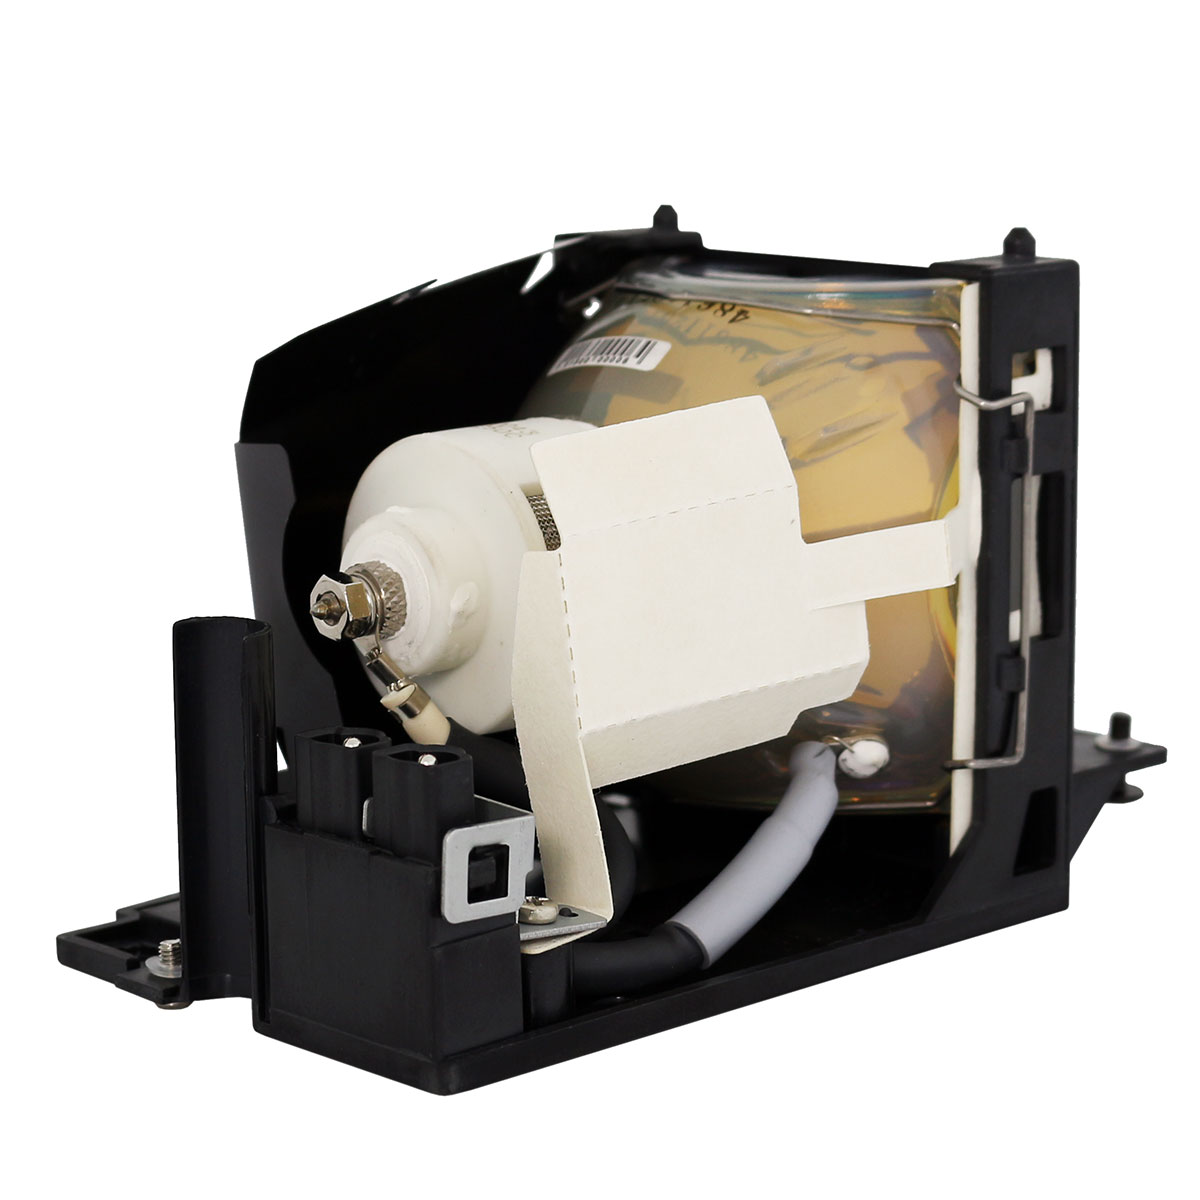 Original Ushio Projector Lamp Replacement for Hitachi MVP-X13 (Bulb Only) - image 1 of 5